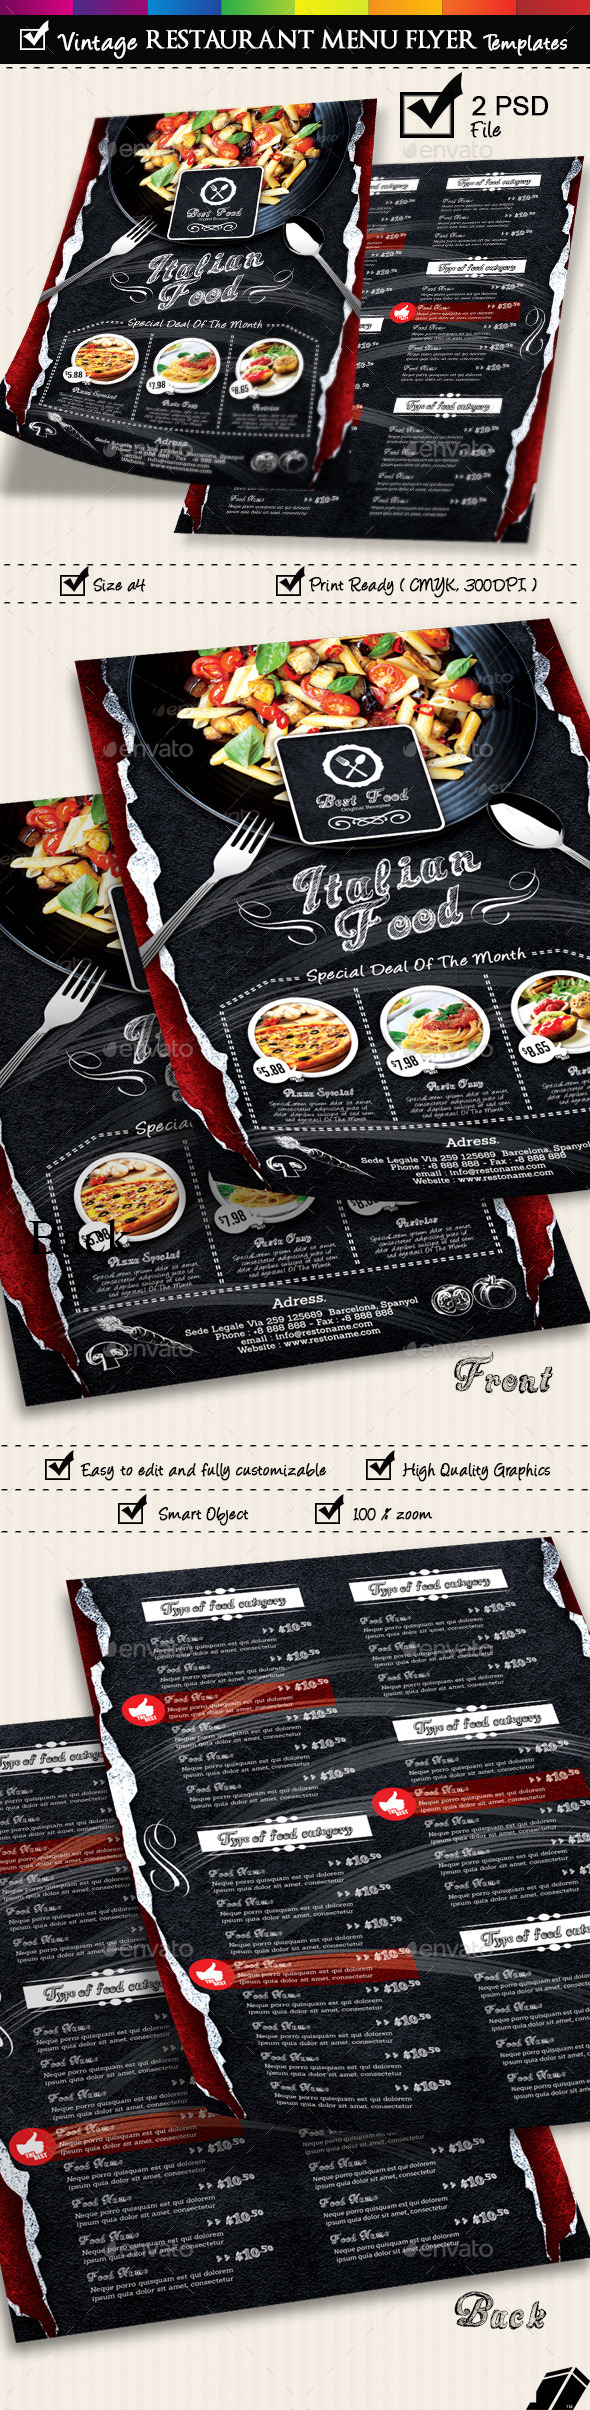 GraphicRiver Restaurant Menu Flyer Templates Vintage Texture v3 9179280